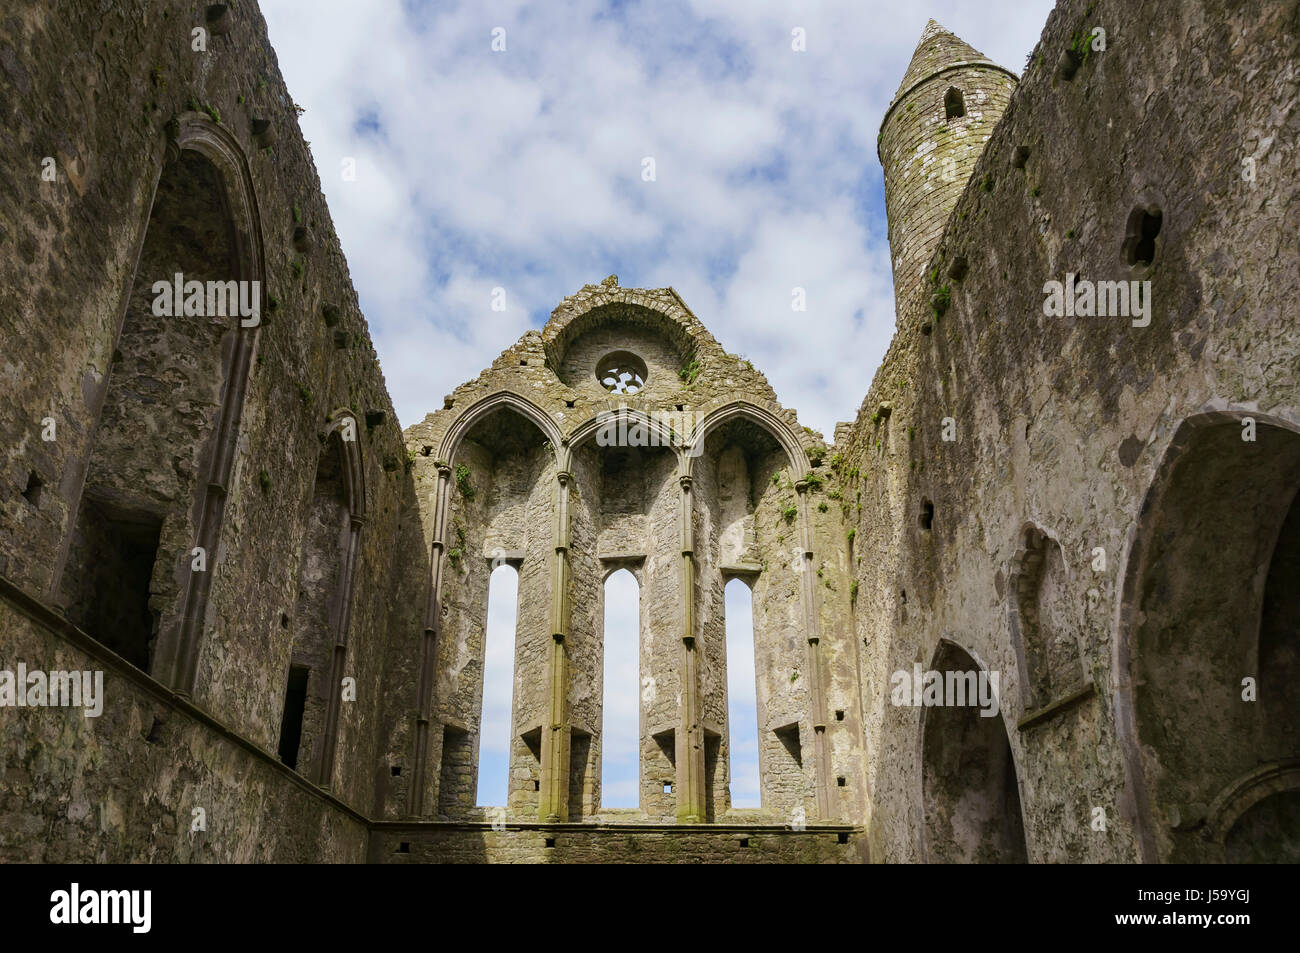 Tipperary, MAY 7: The historical Rock of Cashel on MAY 7, 2017 at Cashel, County Tipperary, Ireland - Stock Image